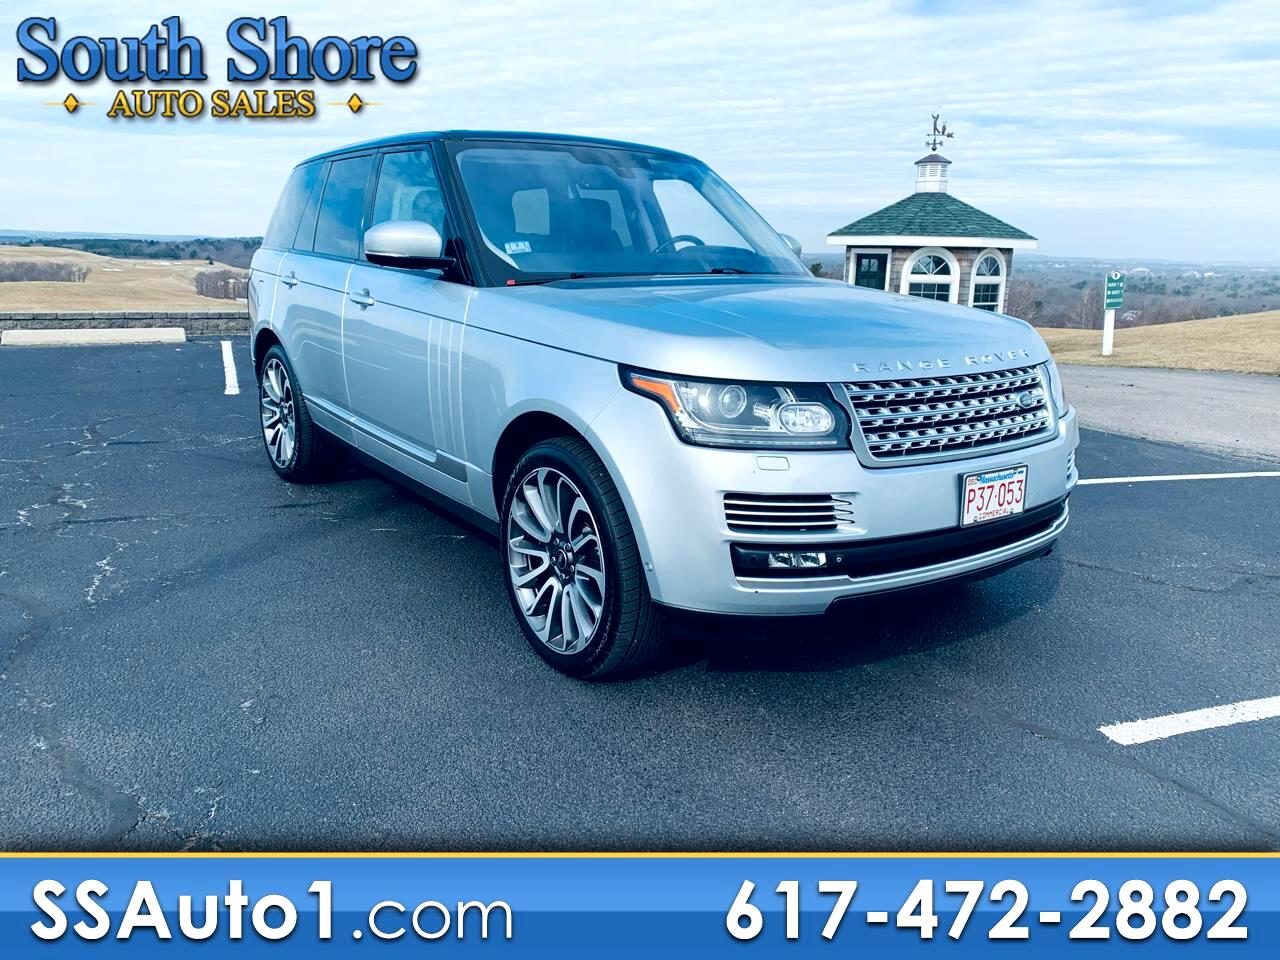 Land Rover Range Rover Autobiography 2015